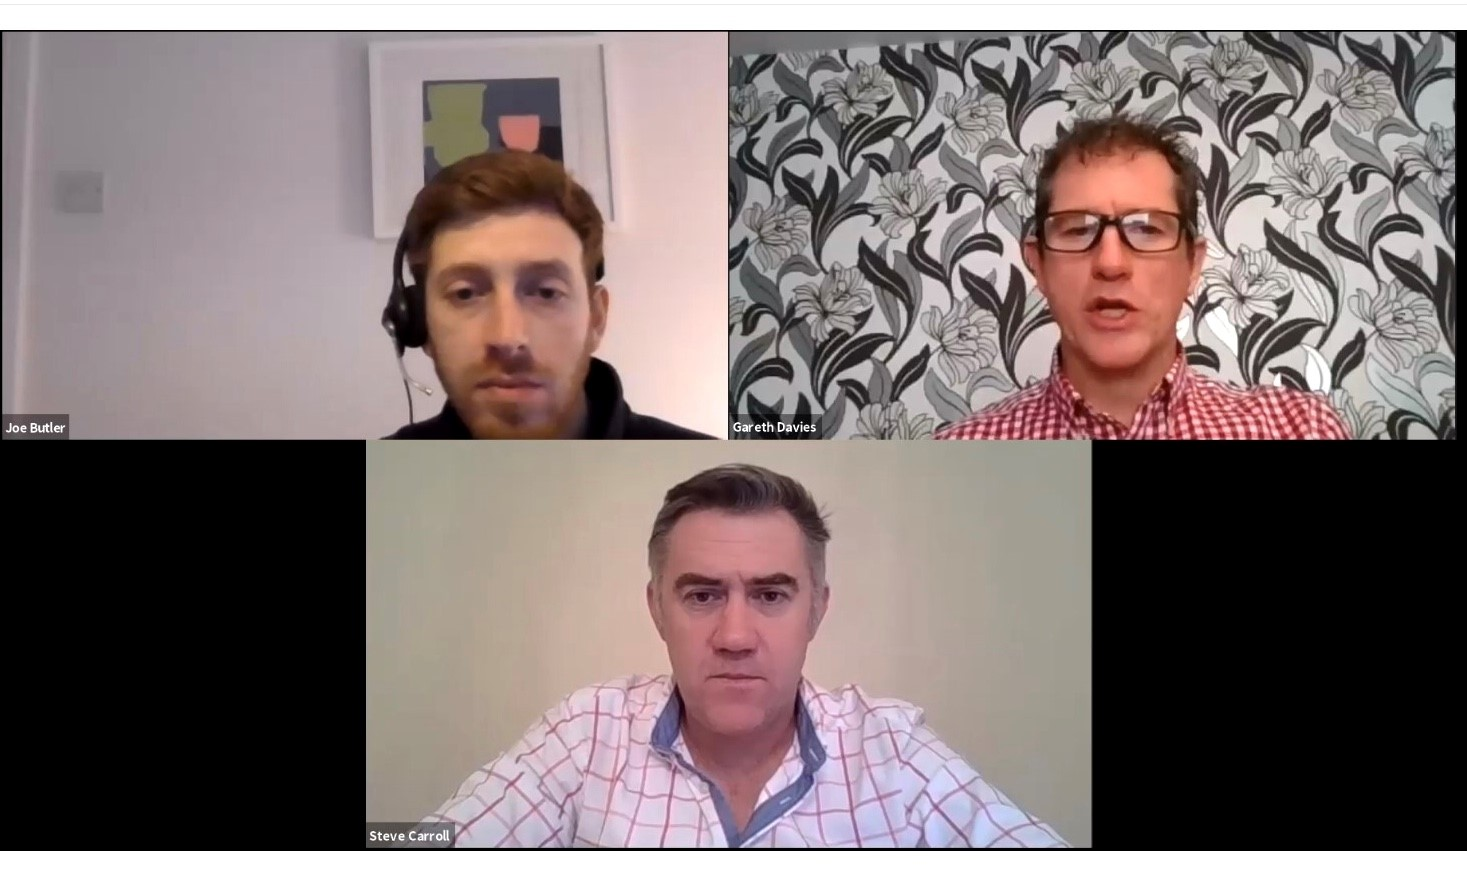 Clockwise from top left: Joe Butler, Gareth Davies and Steve Carroll answer questions during the Sizewell C New Year Webinars